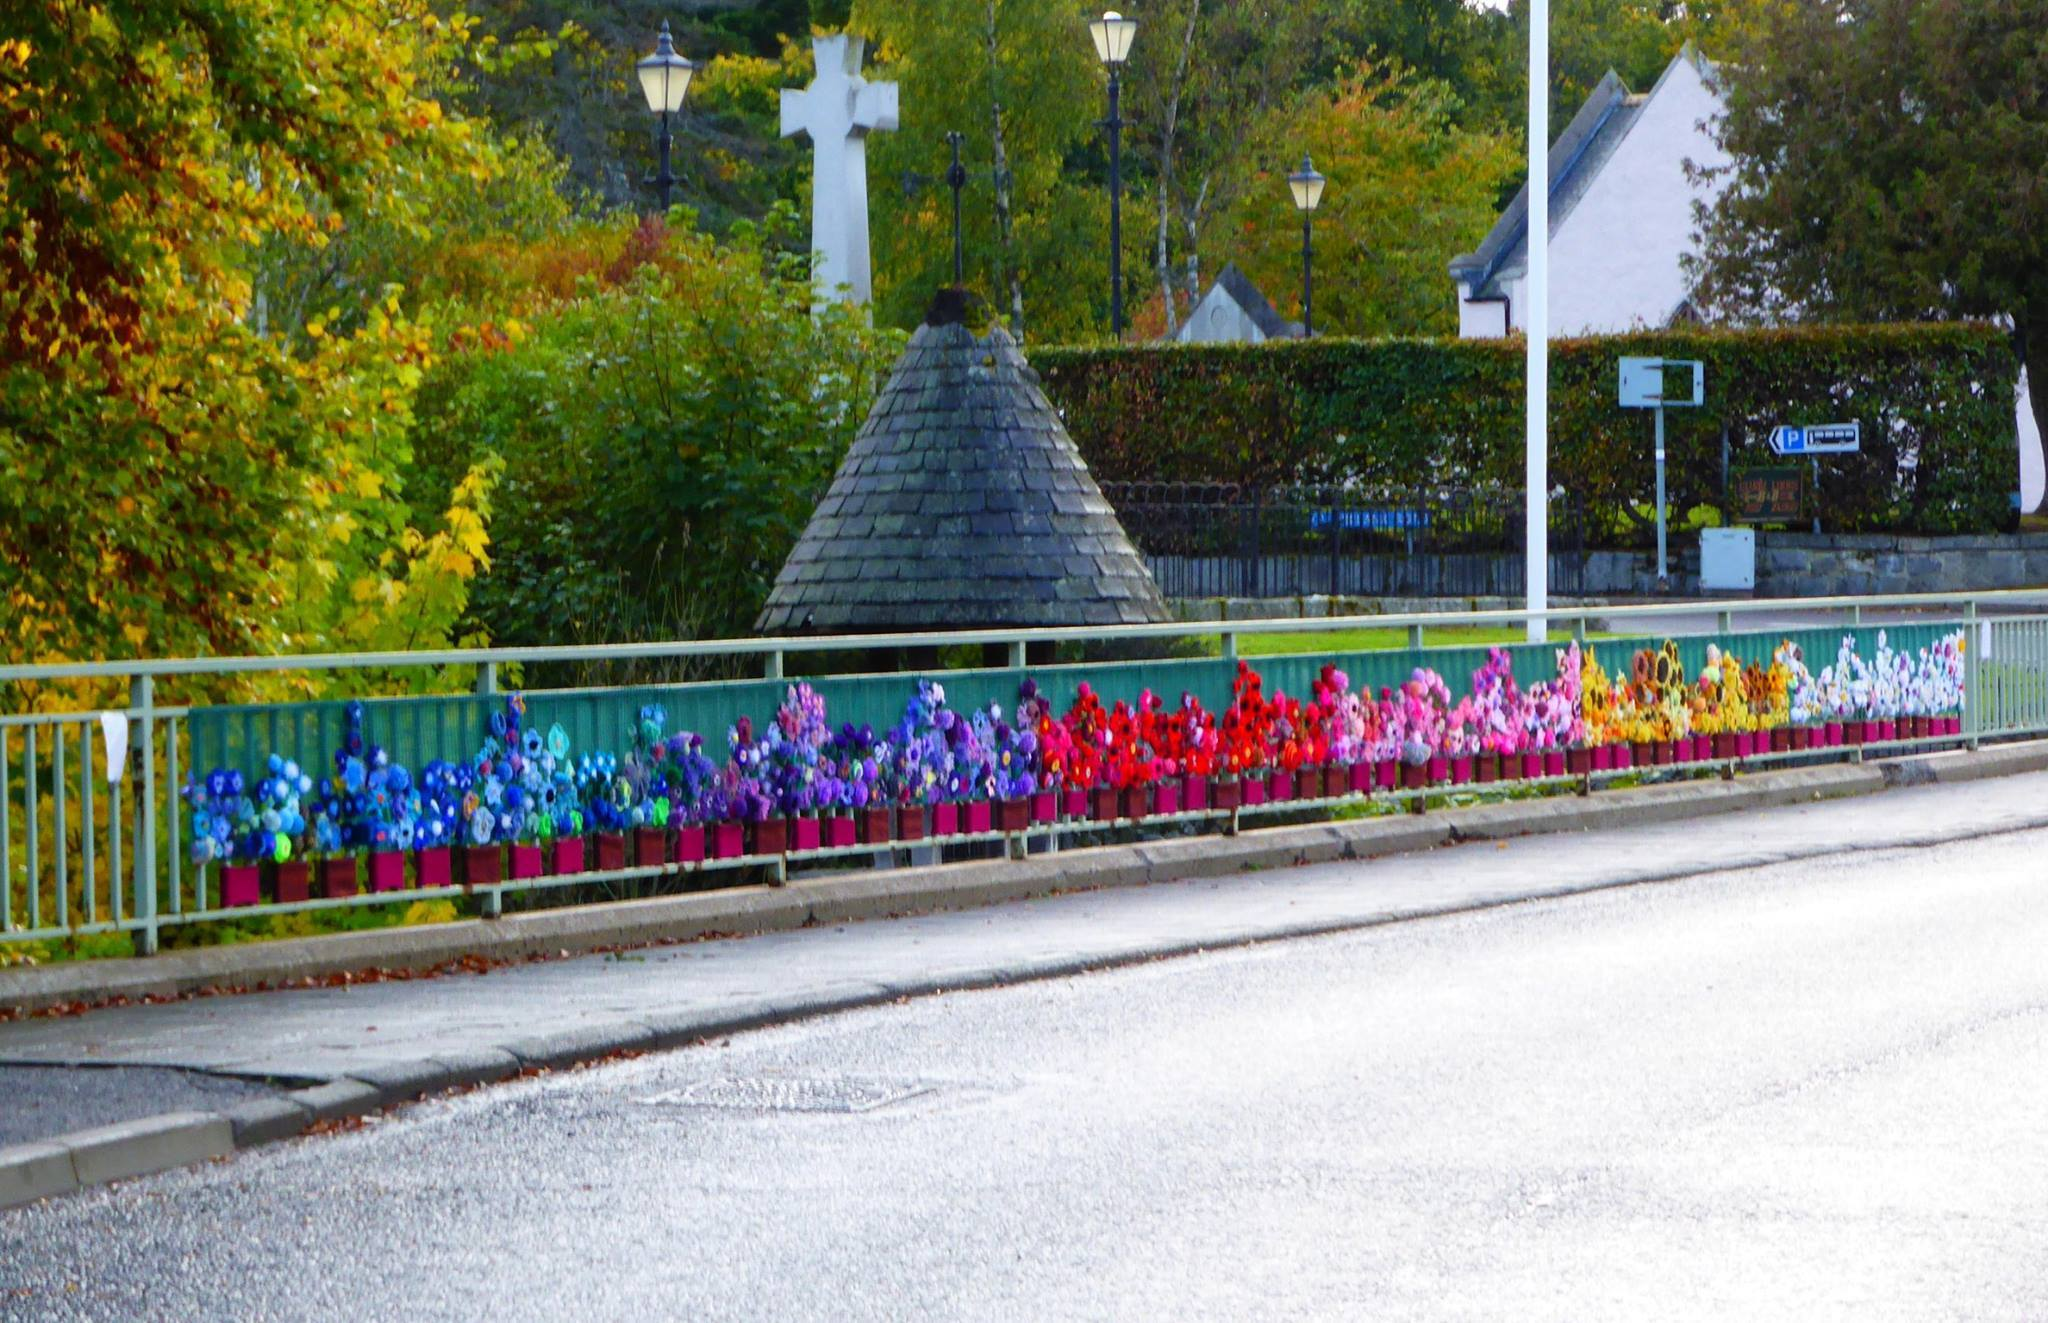 The Braemar Bridge decorated by the Deeisde Knitwits